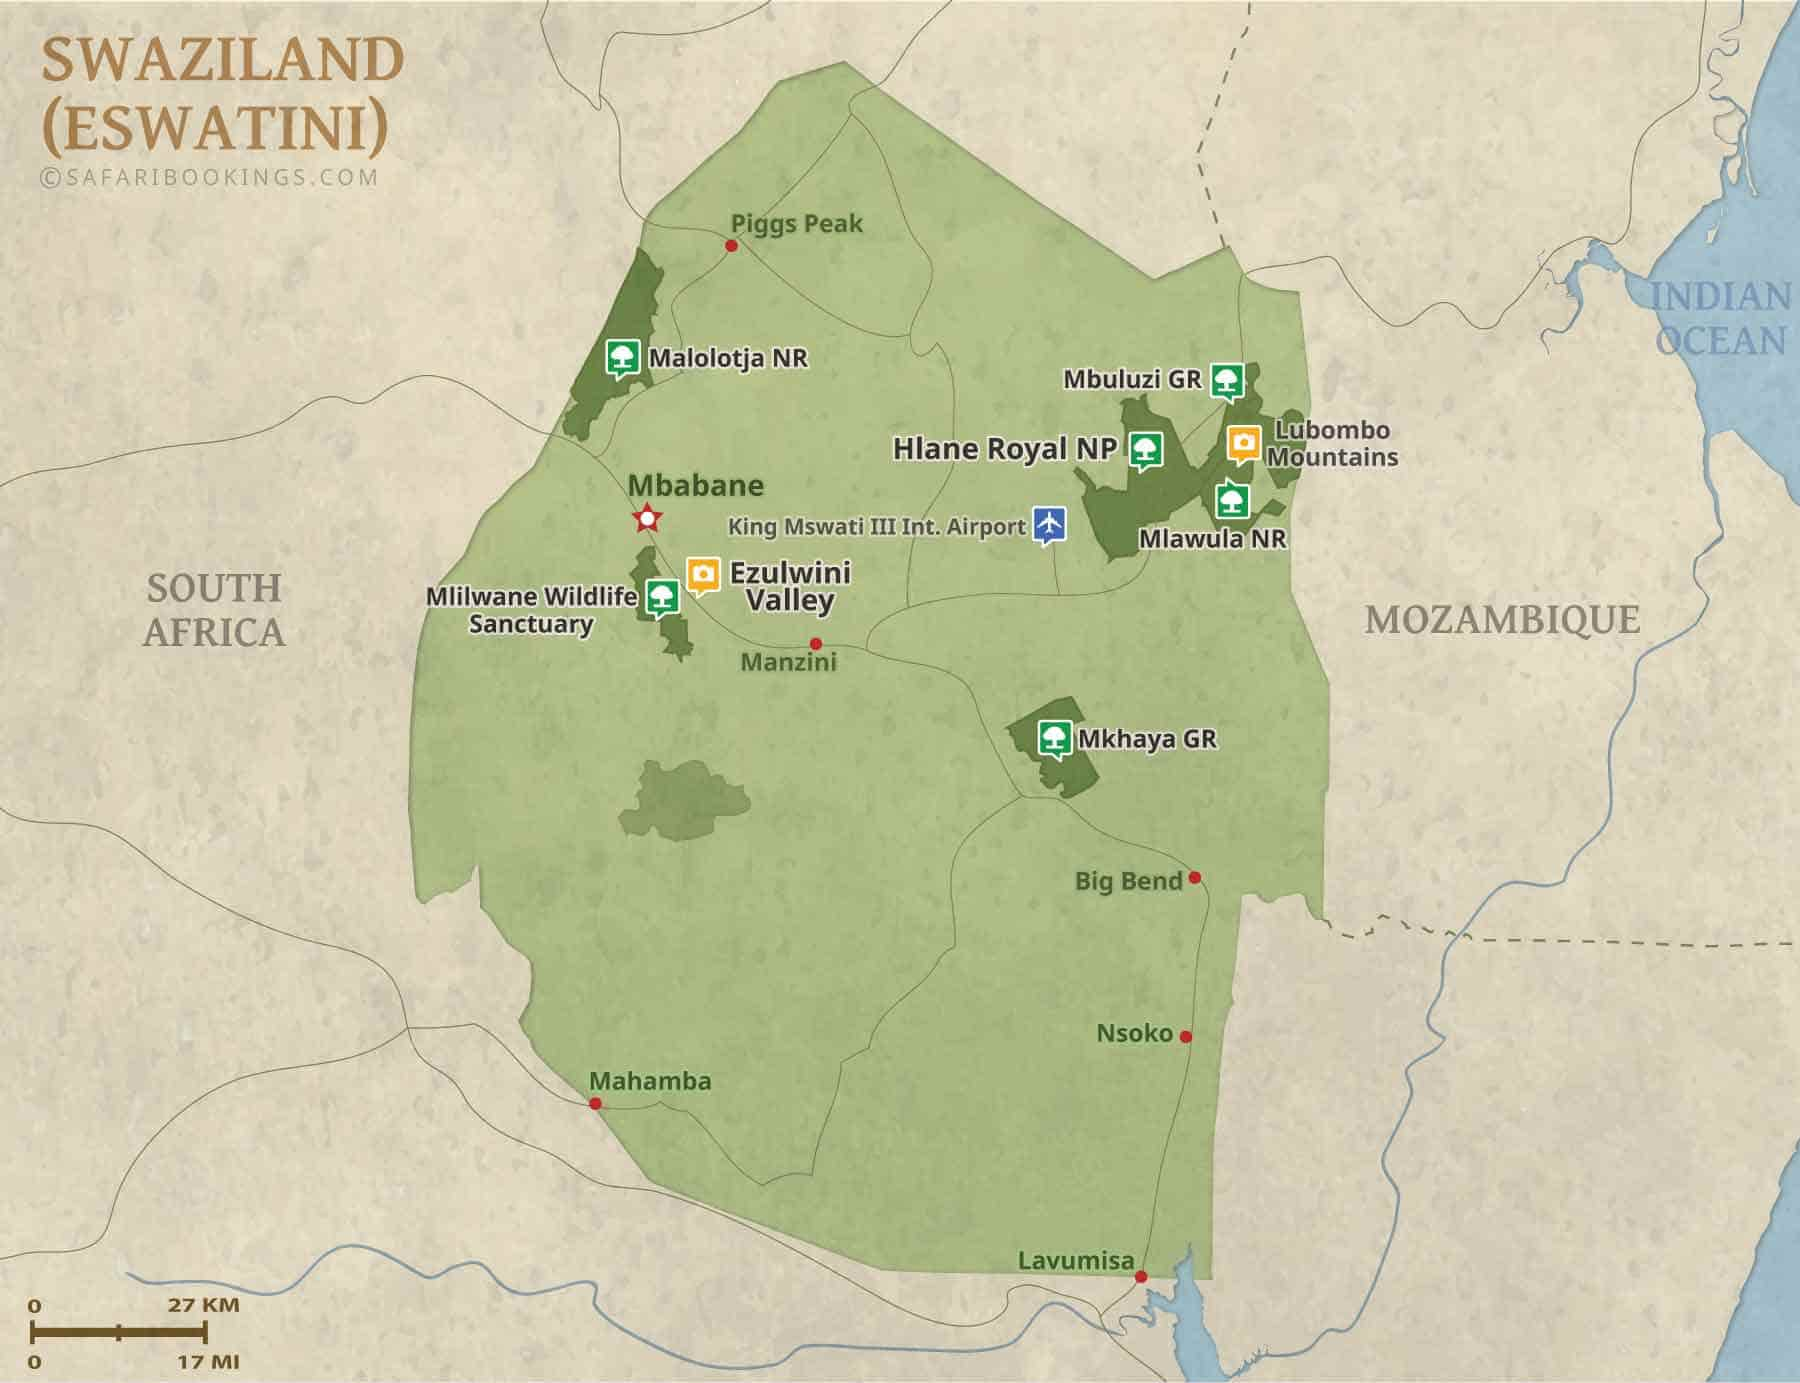 Popular Routes in Swaziland